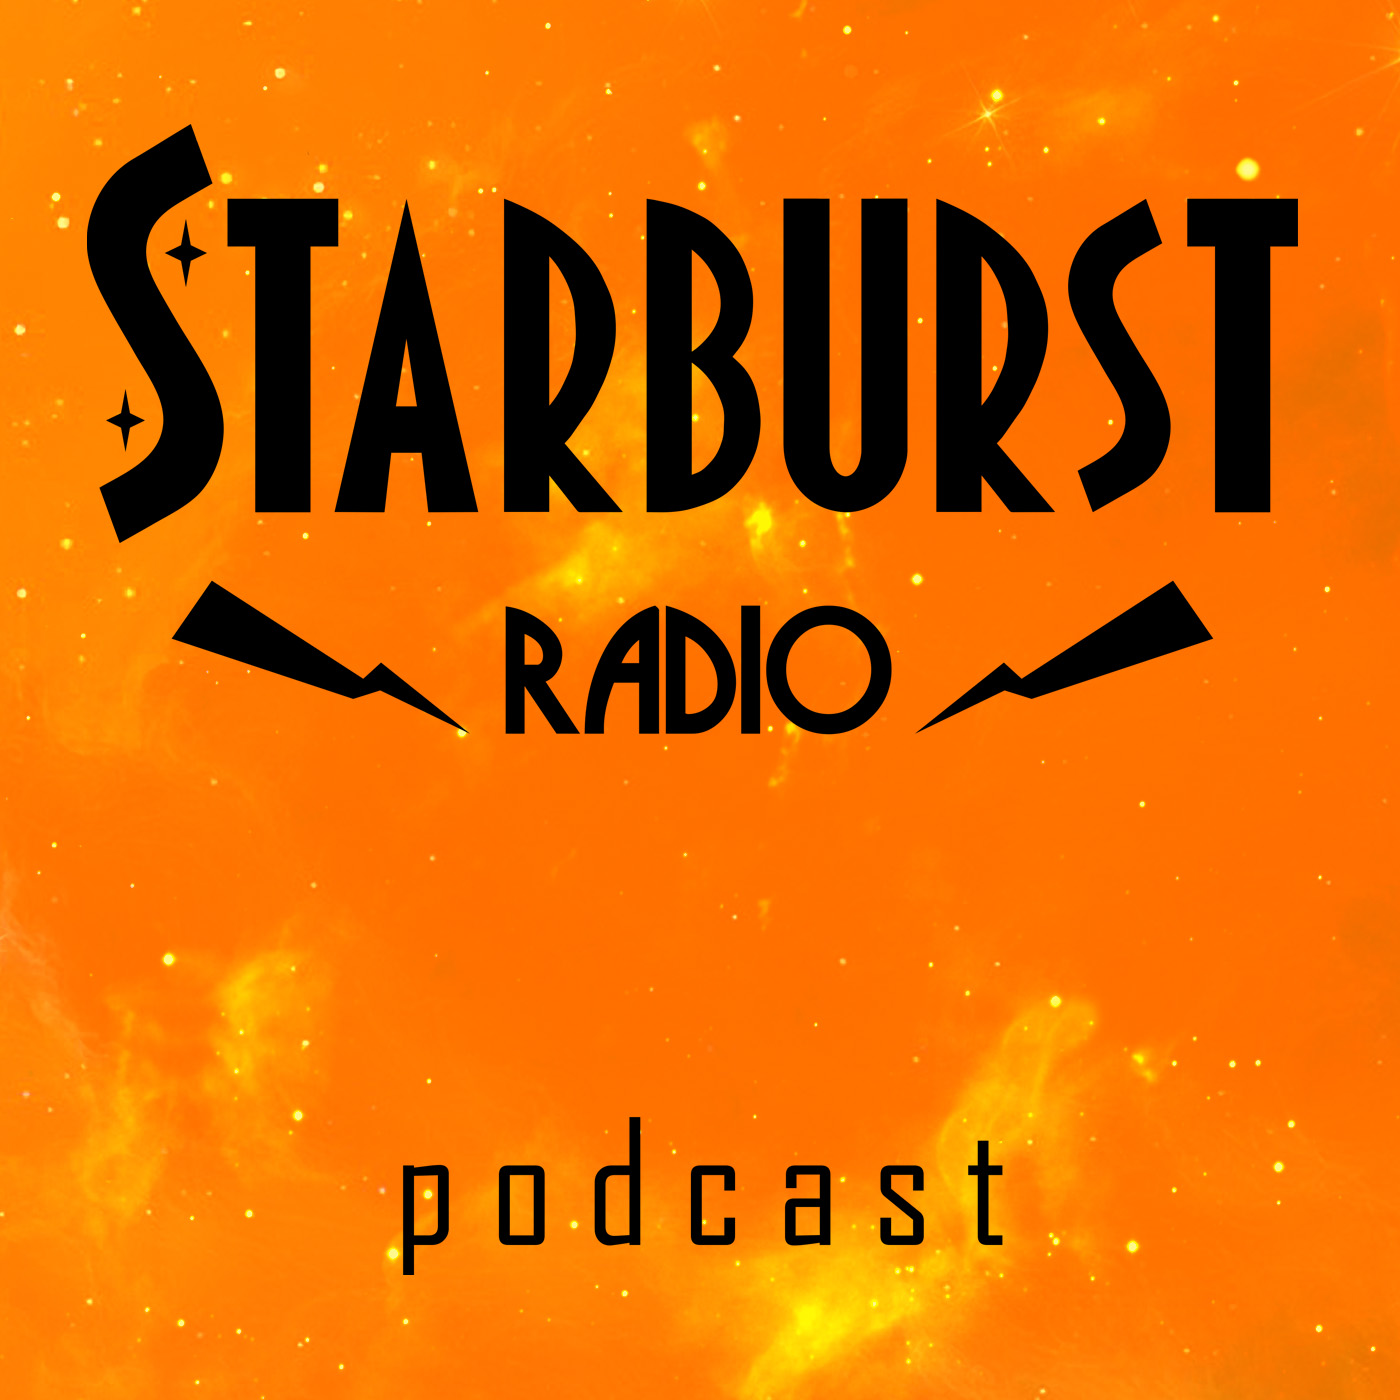 Starburst Radio Podcast